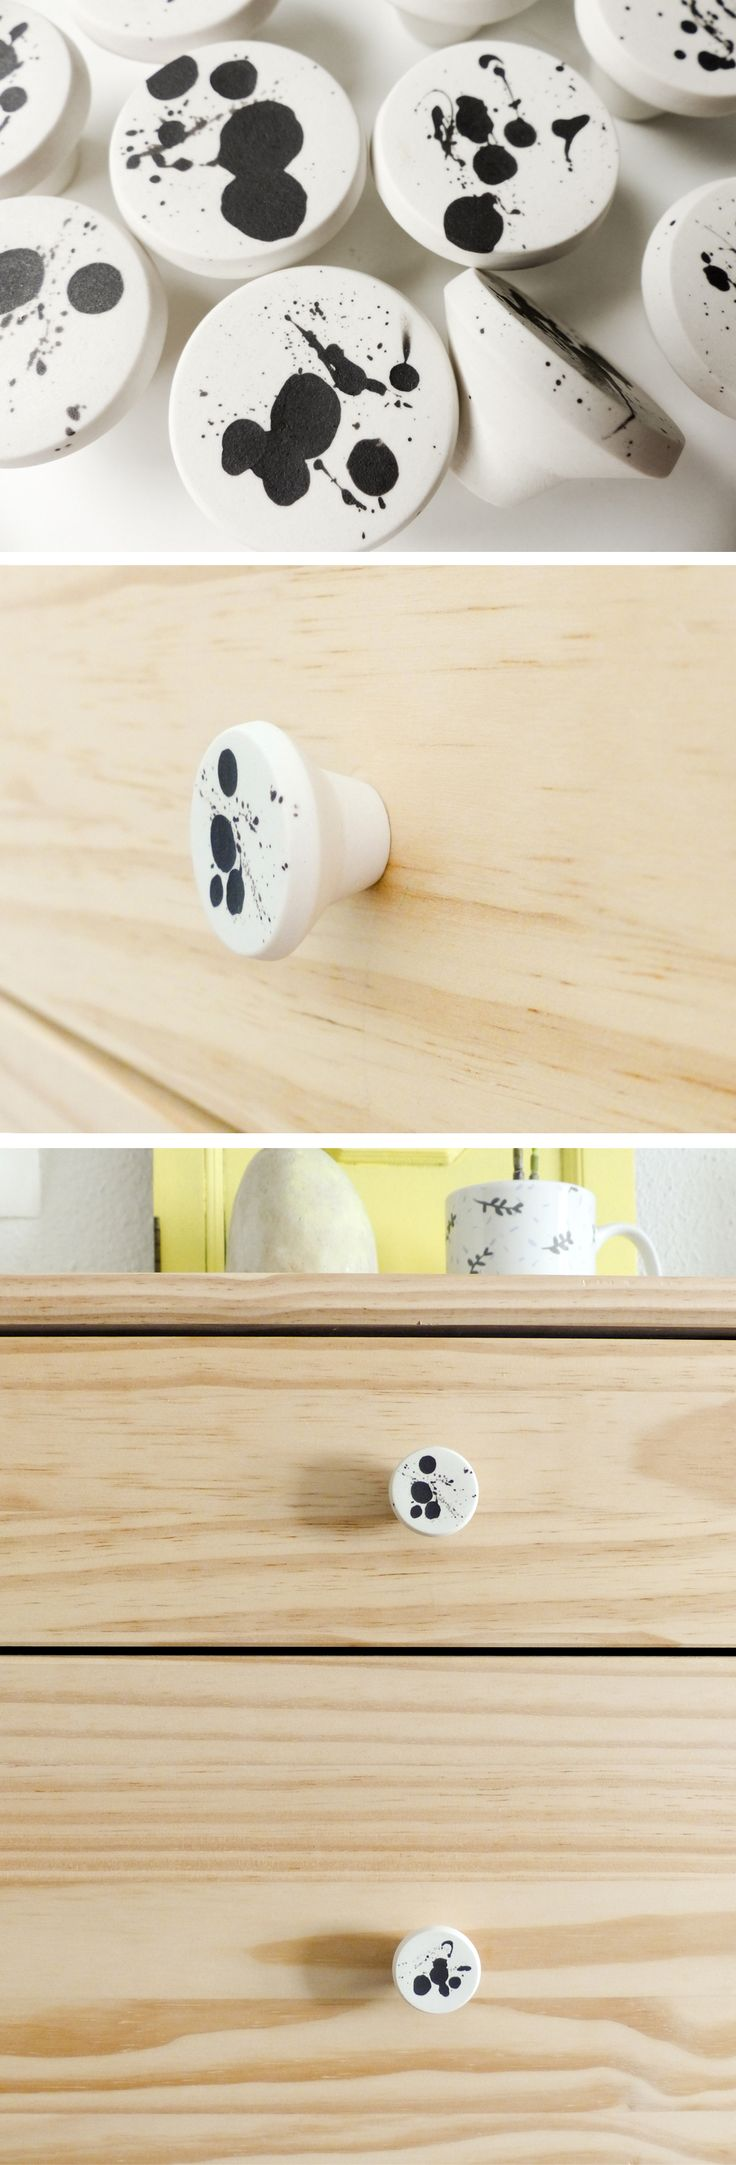 Handmade ceramic knobs and small wall hangers. Made in porcelain. Soft matte unglazed finishing. Black and white.